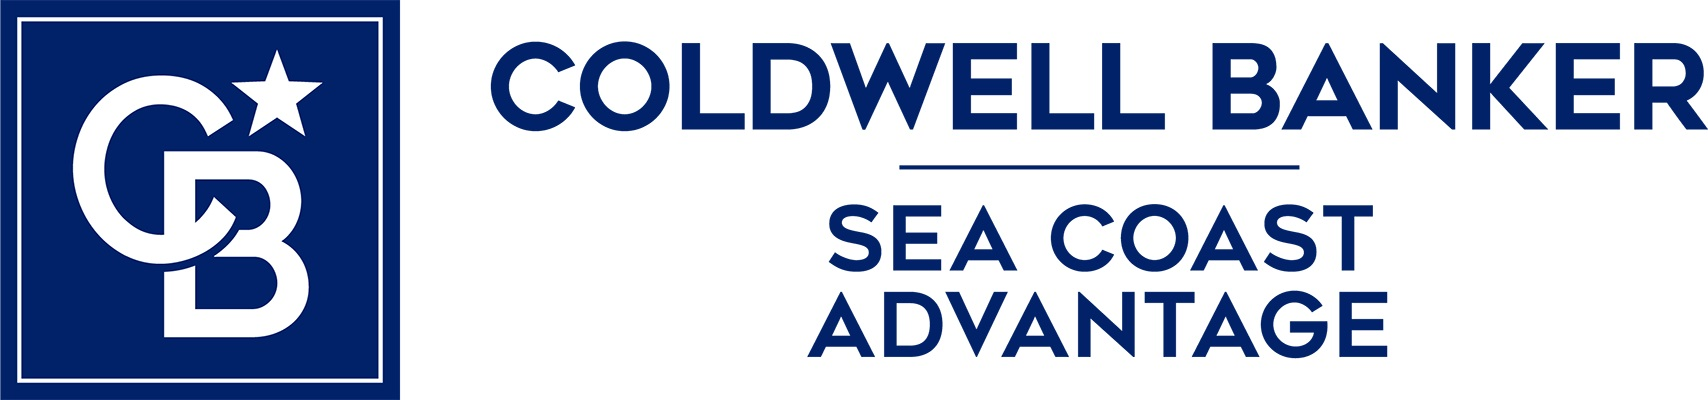 Eve Martin - Coldwell Banker Sea Coast Advantage Realty Logo